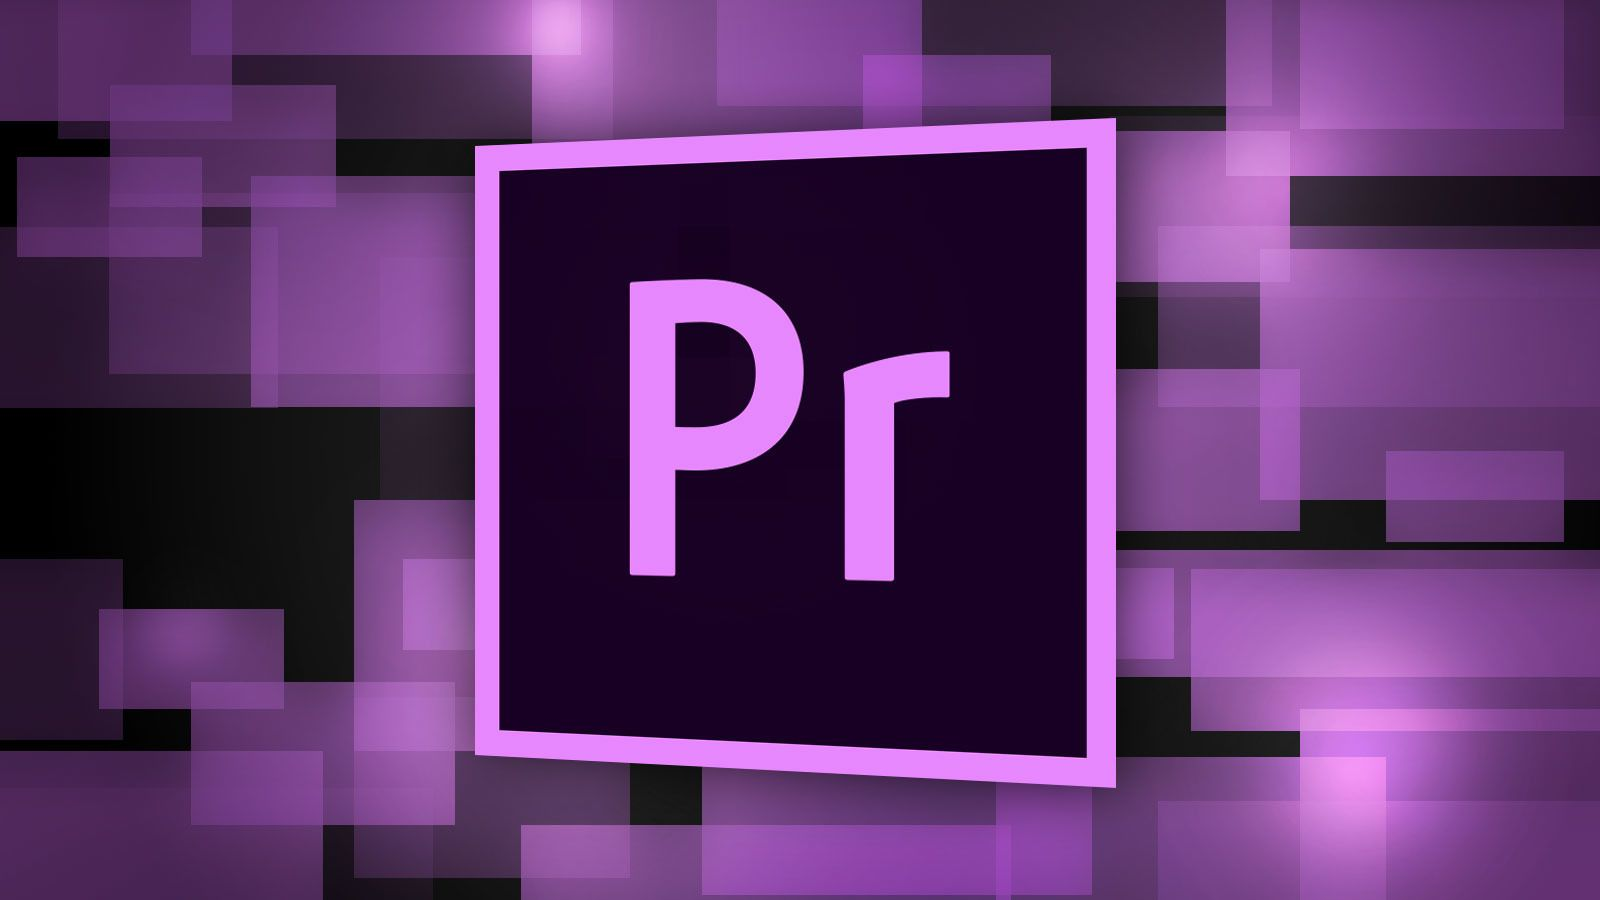 Ru visual studio ultimate 2017 x86 dvdpirat dramovlea adobe premiere pro cc 2017 crack plus serial key latest free adobe premiere is pc software that is advanced for video editing graphic designing spiritdancerdesigns Image collections